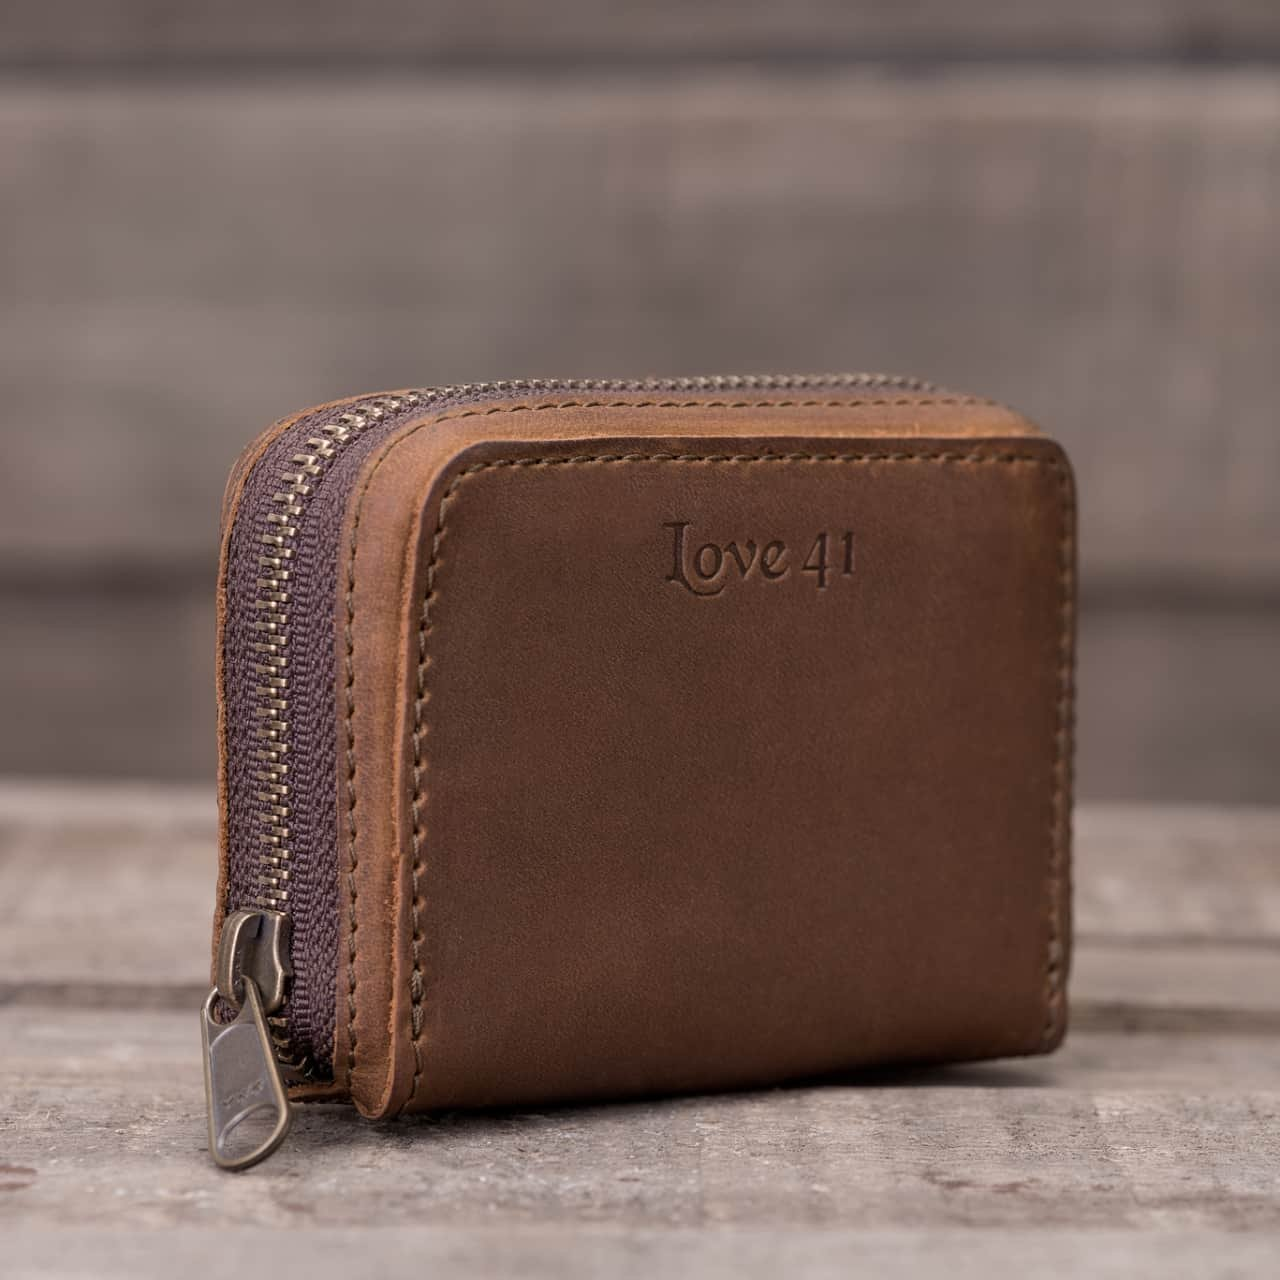 Love 41 Accordion Credit Card Wallet Includes 41 Year Warranty by love (Image #3)